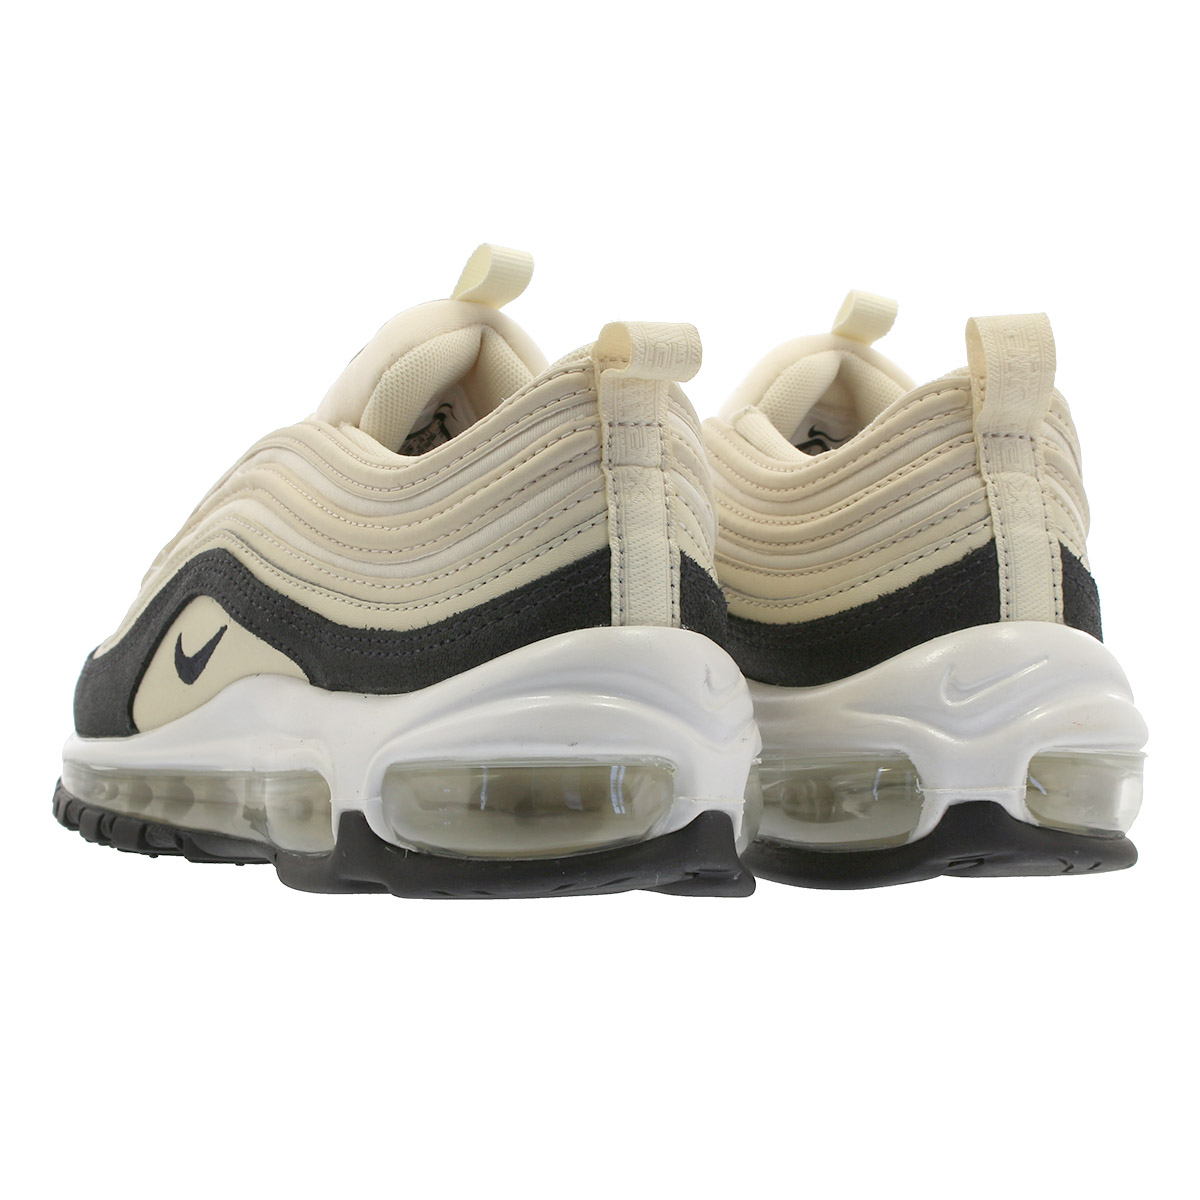 9bfe201868 ... NIKE WMNS AIR MAX 97 PREMIUM Nike women Air Max 97 premium LIGHT CREAM/ OIL ...